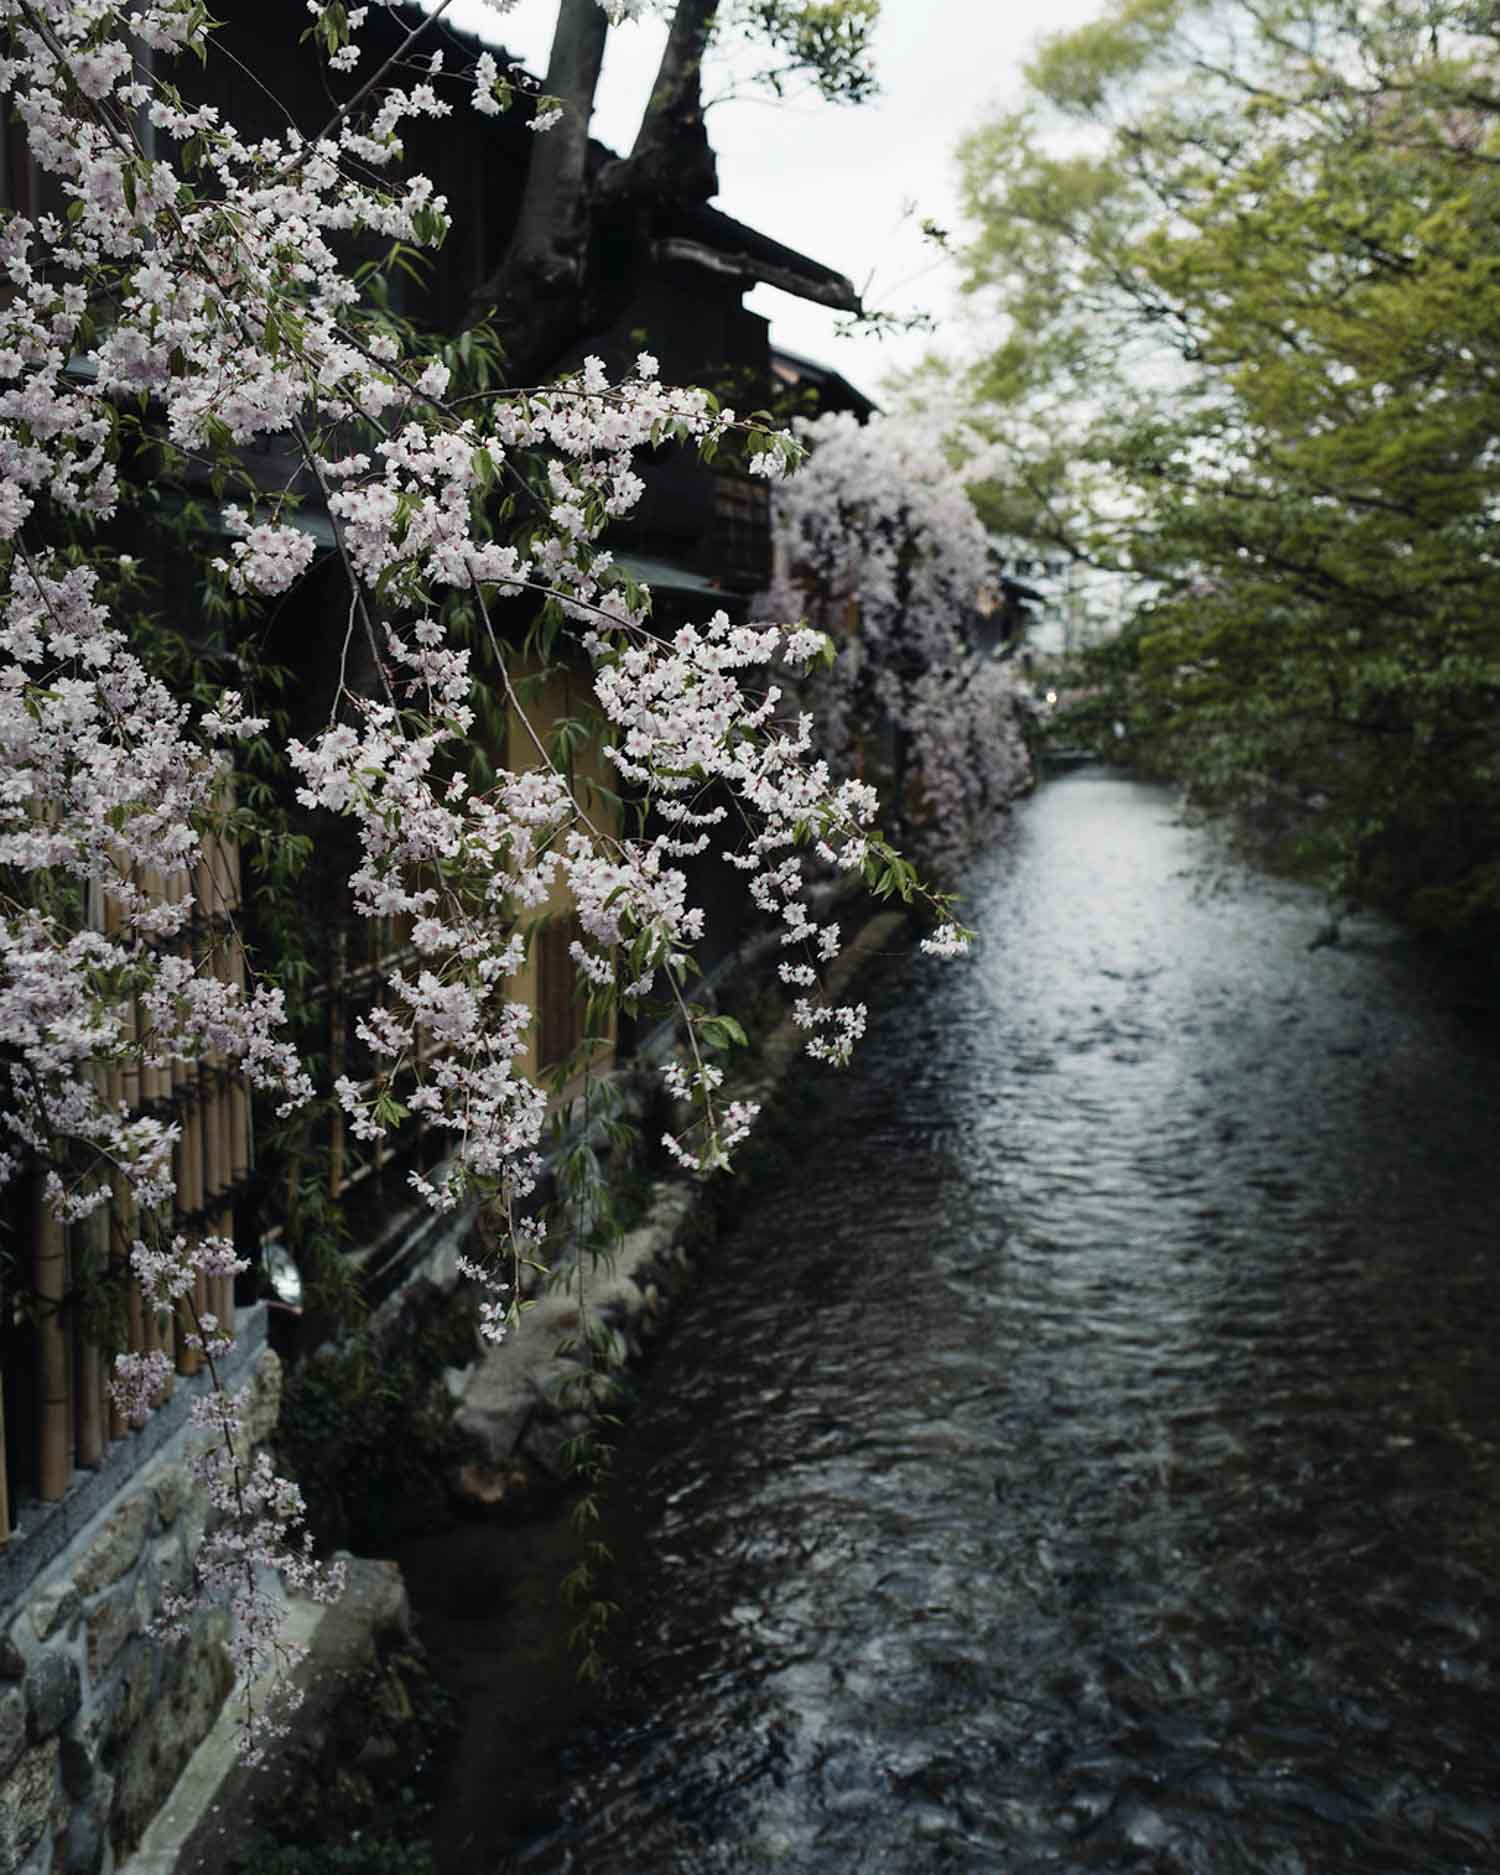 Cherry blossom in Gion, Kyoto